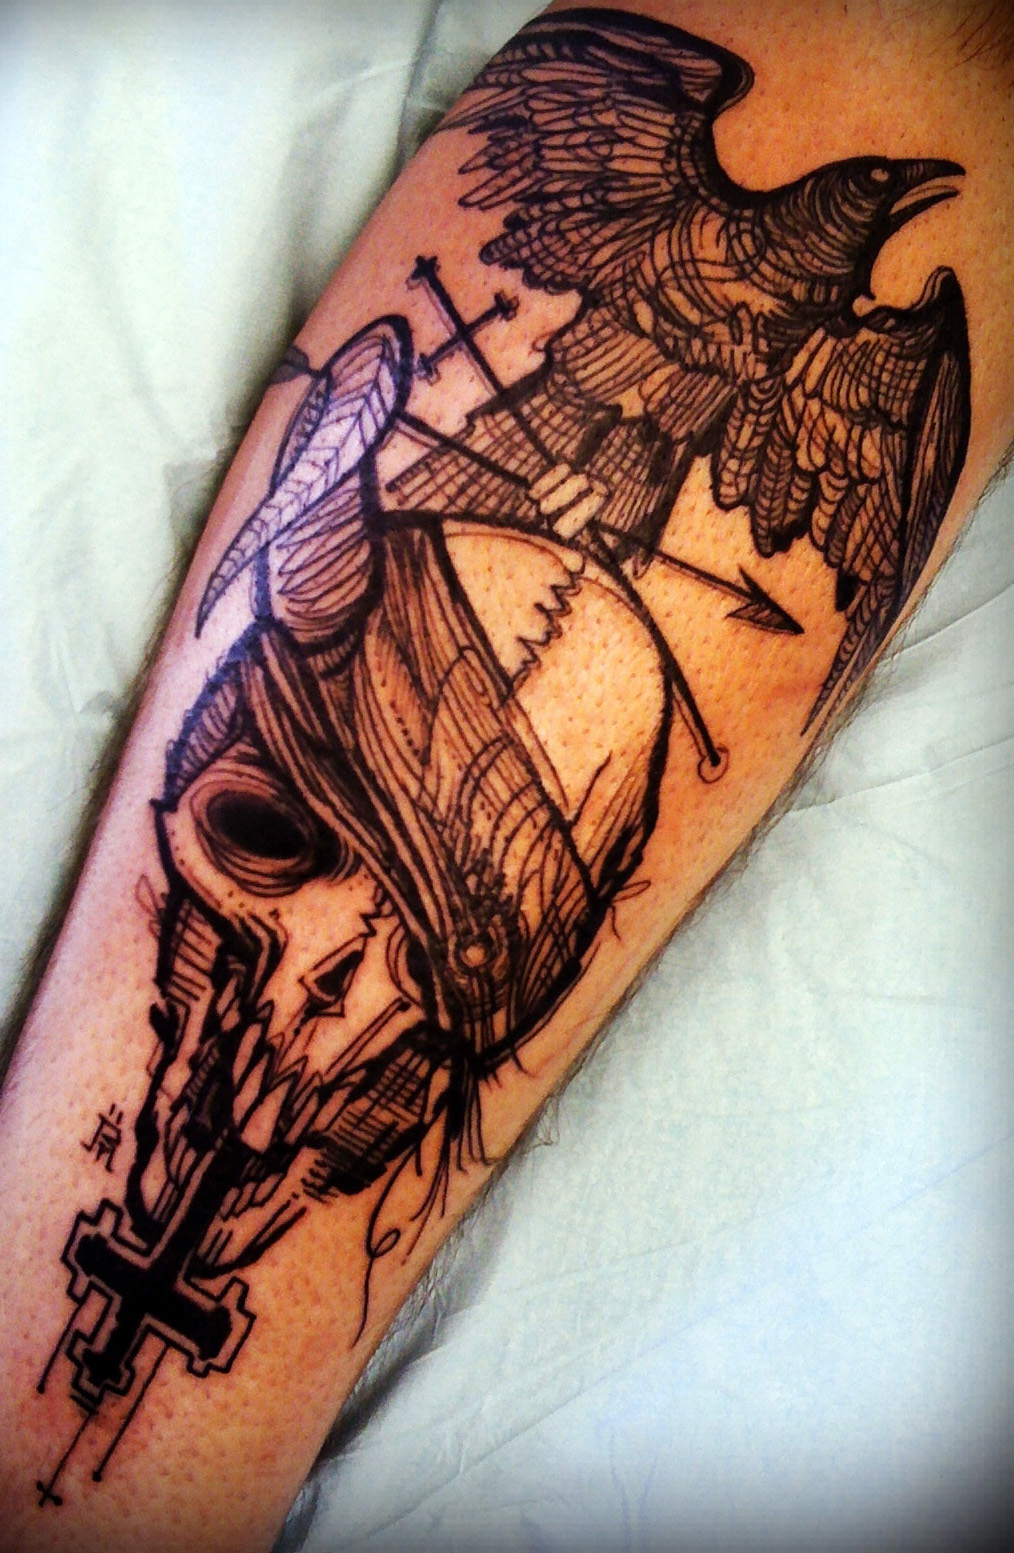 Dawn cooke 32 great tattoo artists everyone should know for Good tattoo artists